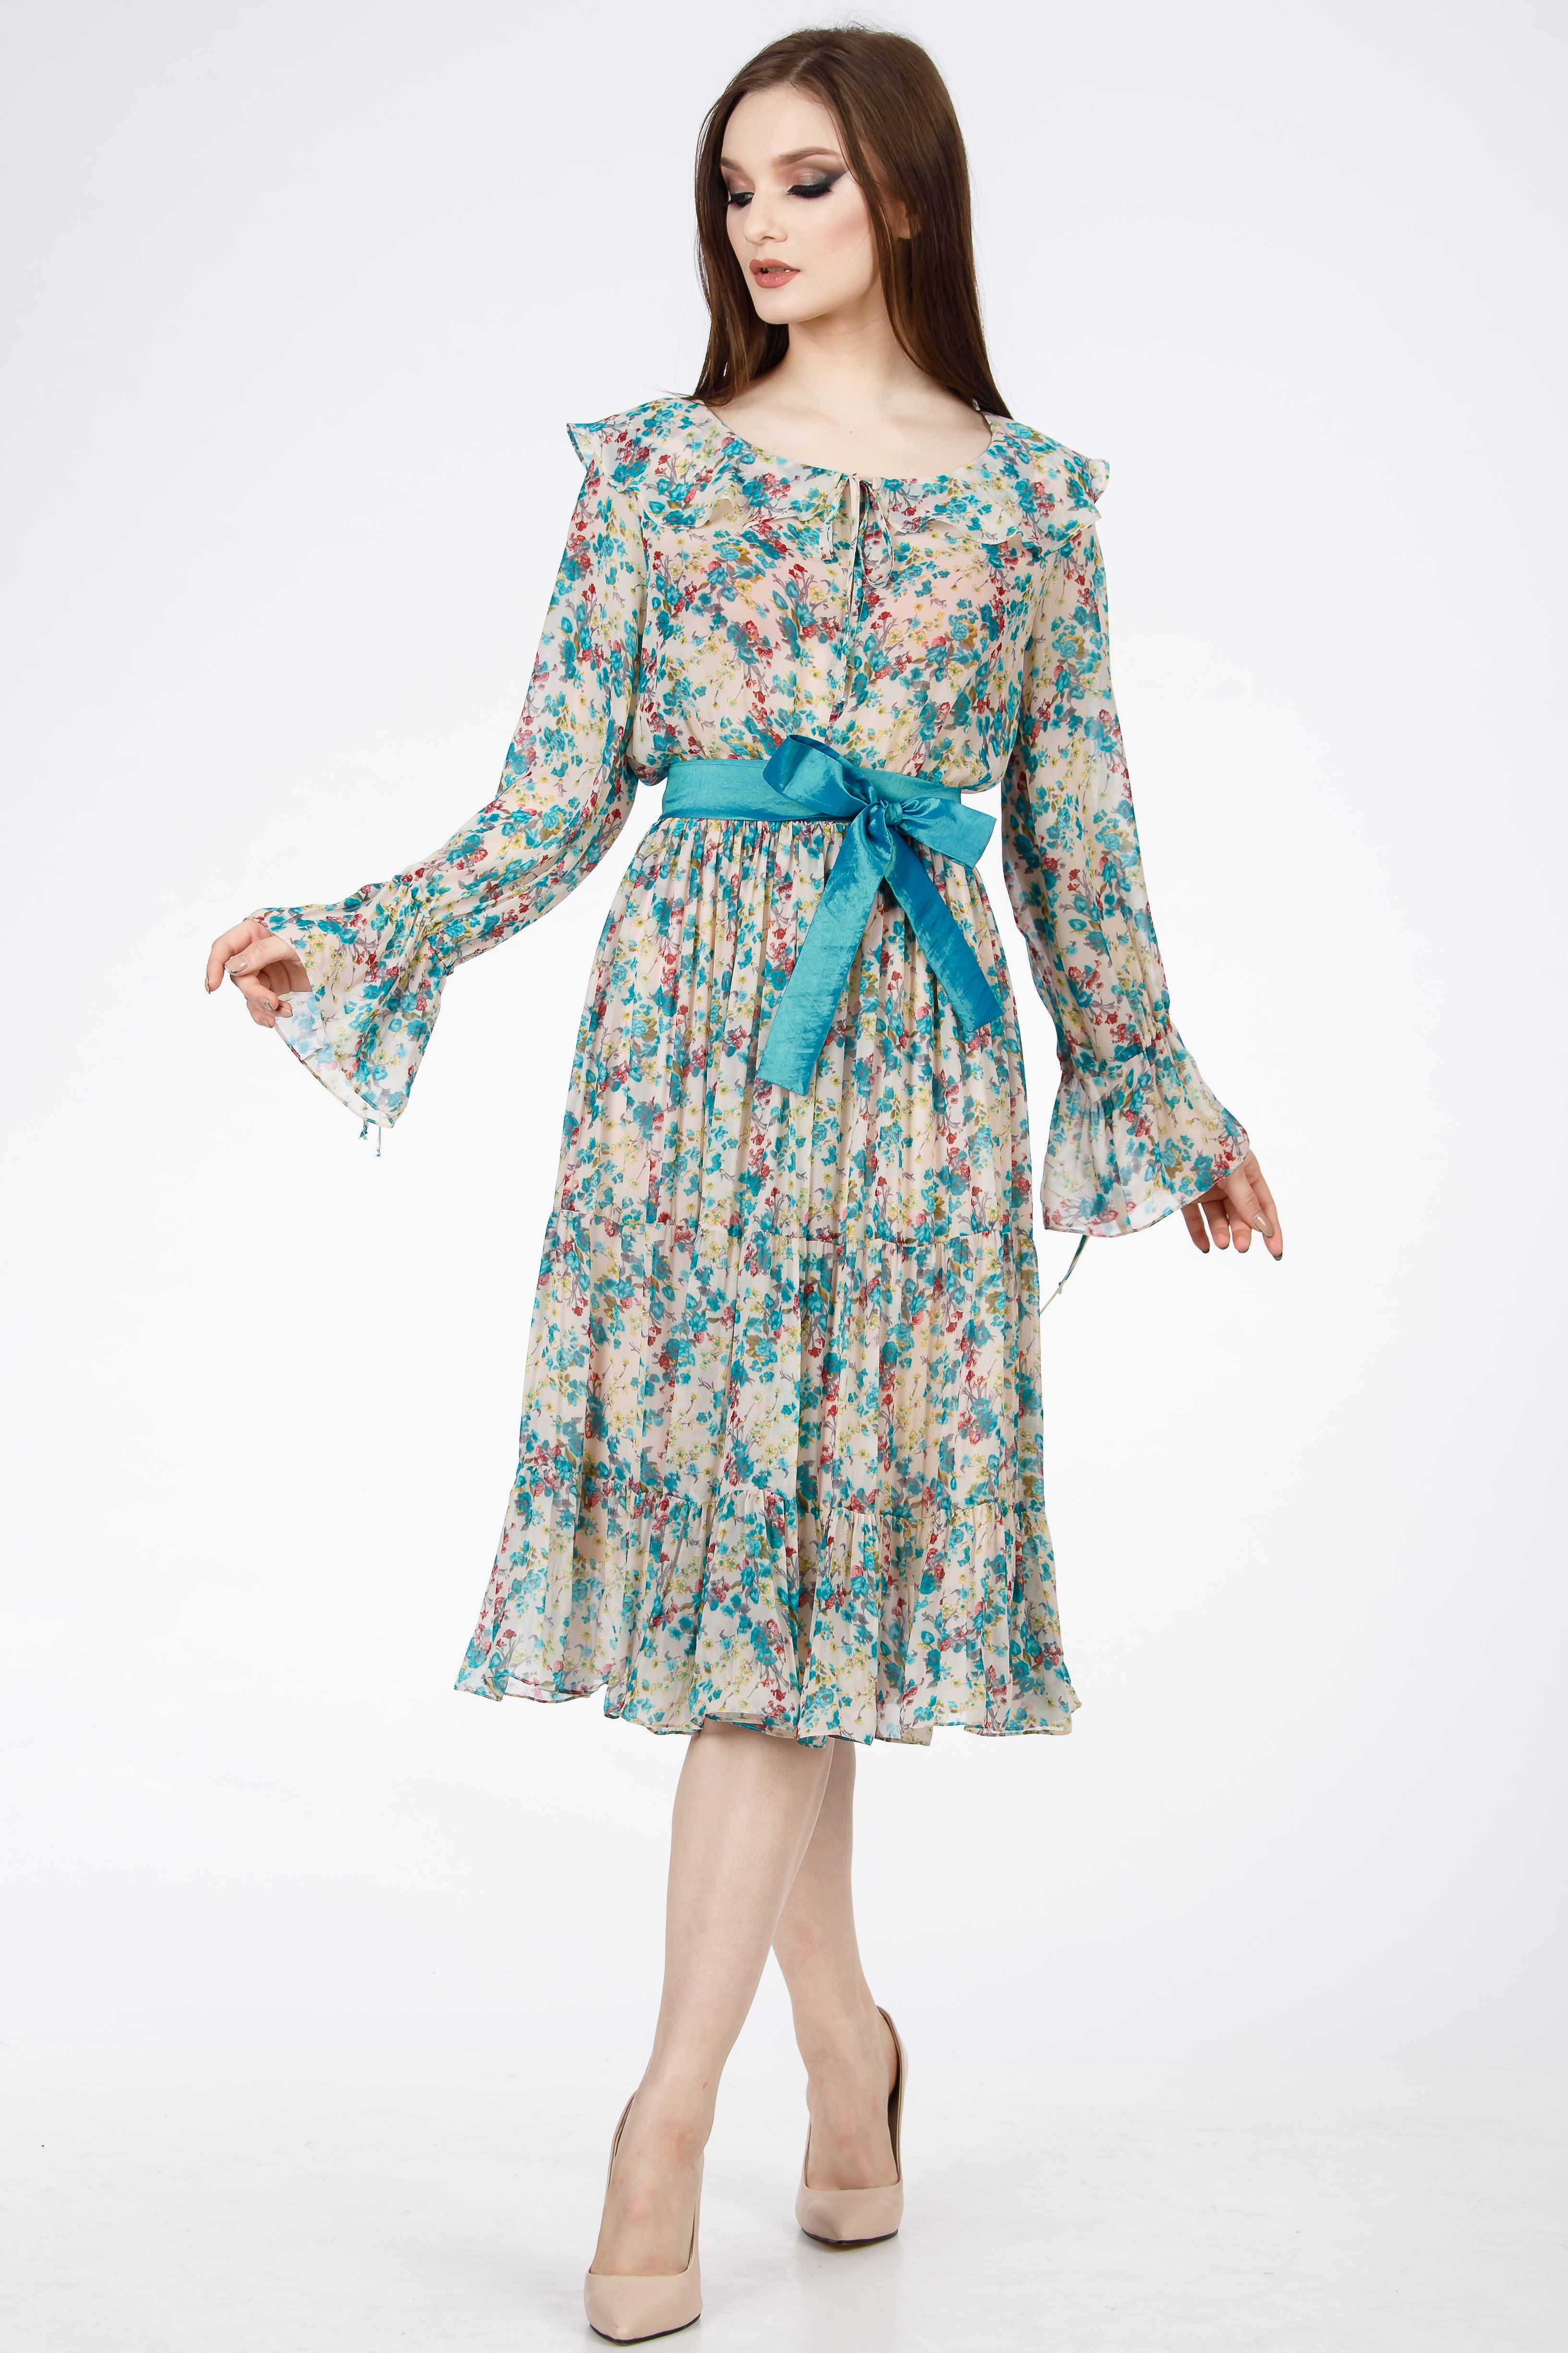 Floral Dresses Boho Outfit Summer Dress Rochii Casual Rochii